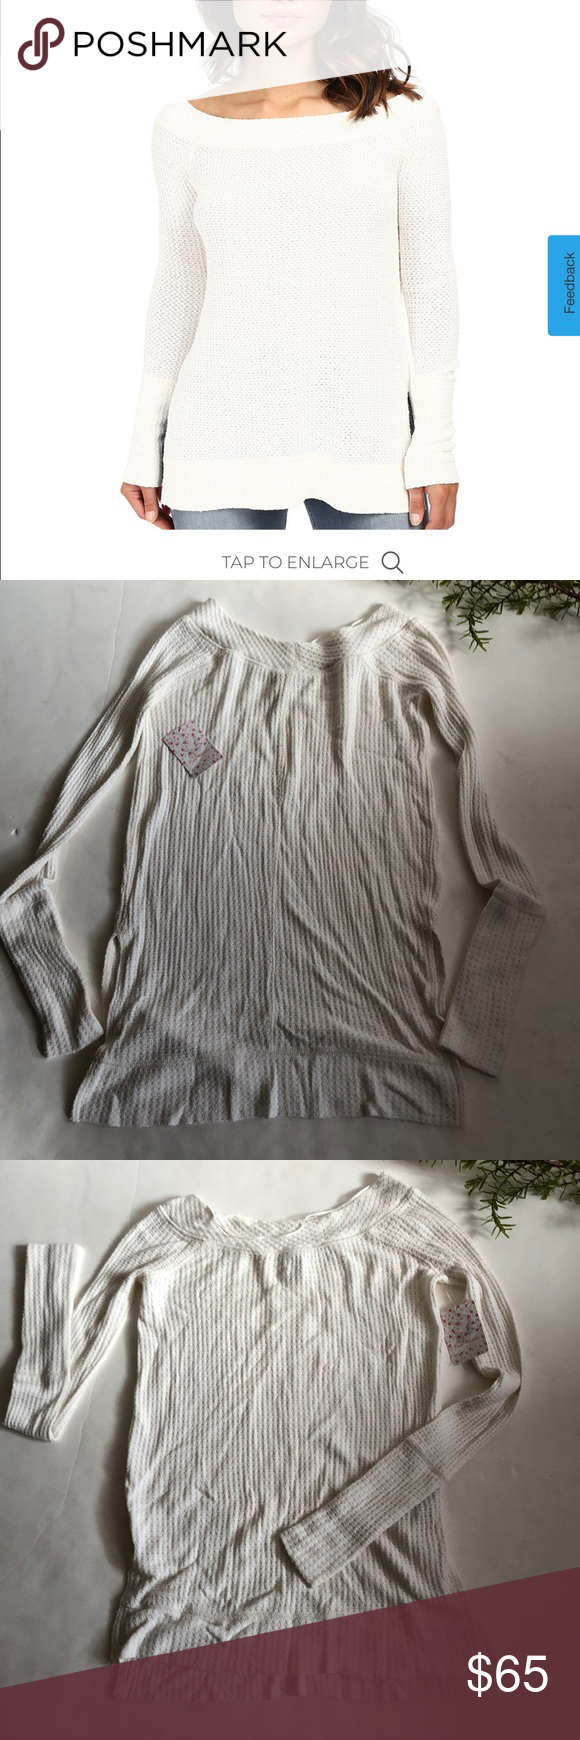 Free People thermal top Ivory colored thermal long sleeves.picture #4 is most ac…